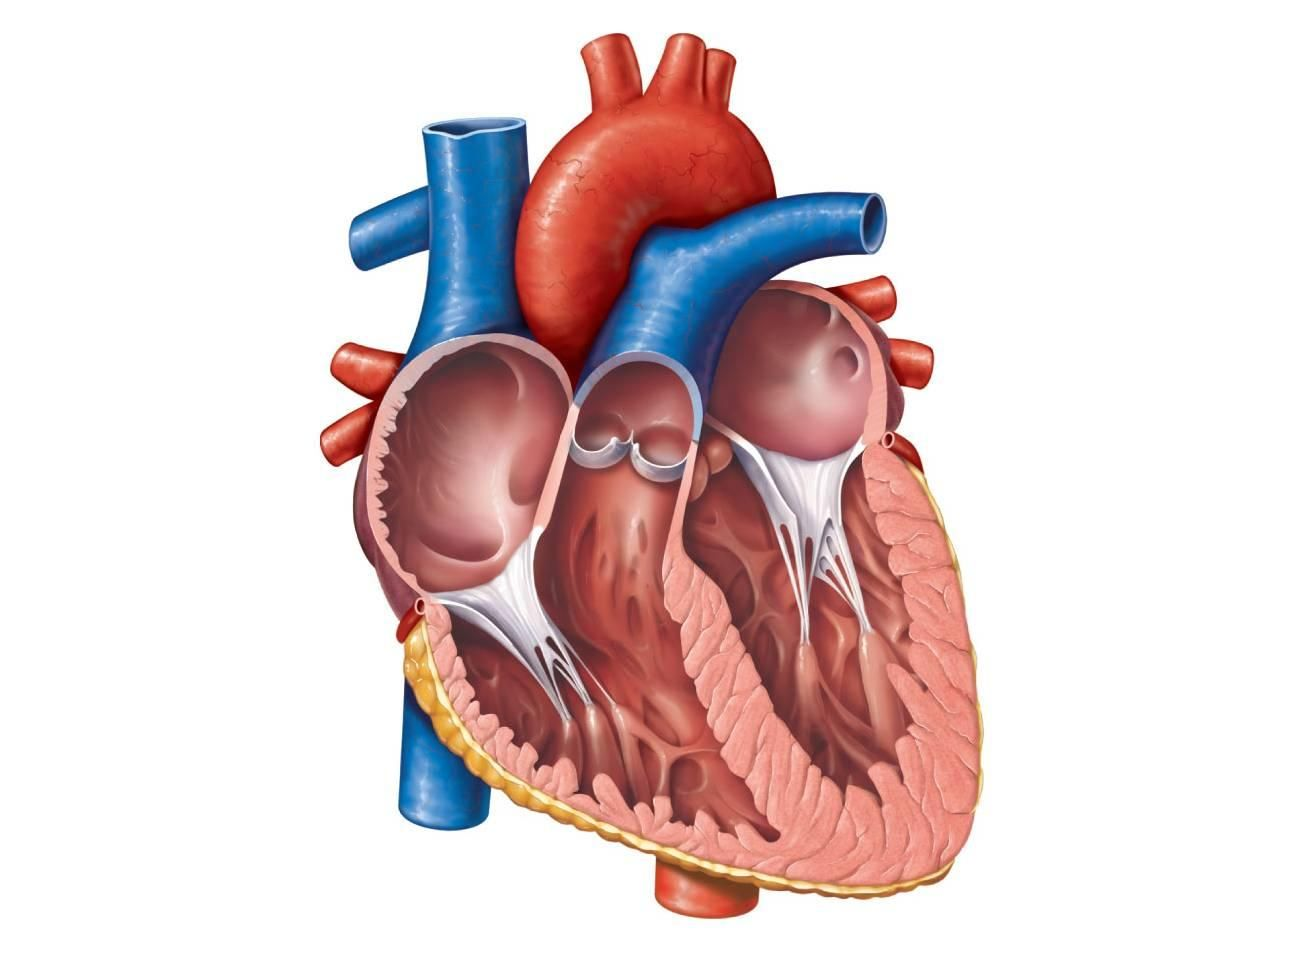 pin by omphile on heart diagram | pinterest | heart diagram, heart